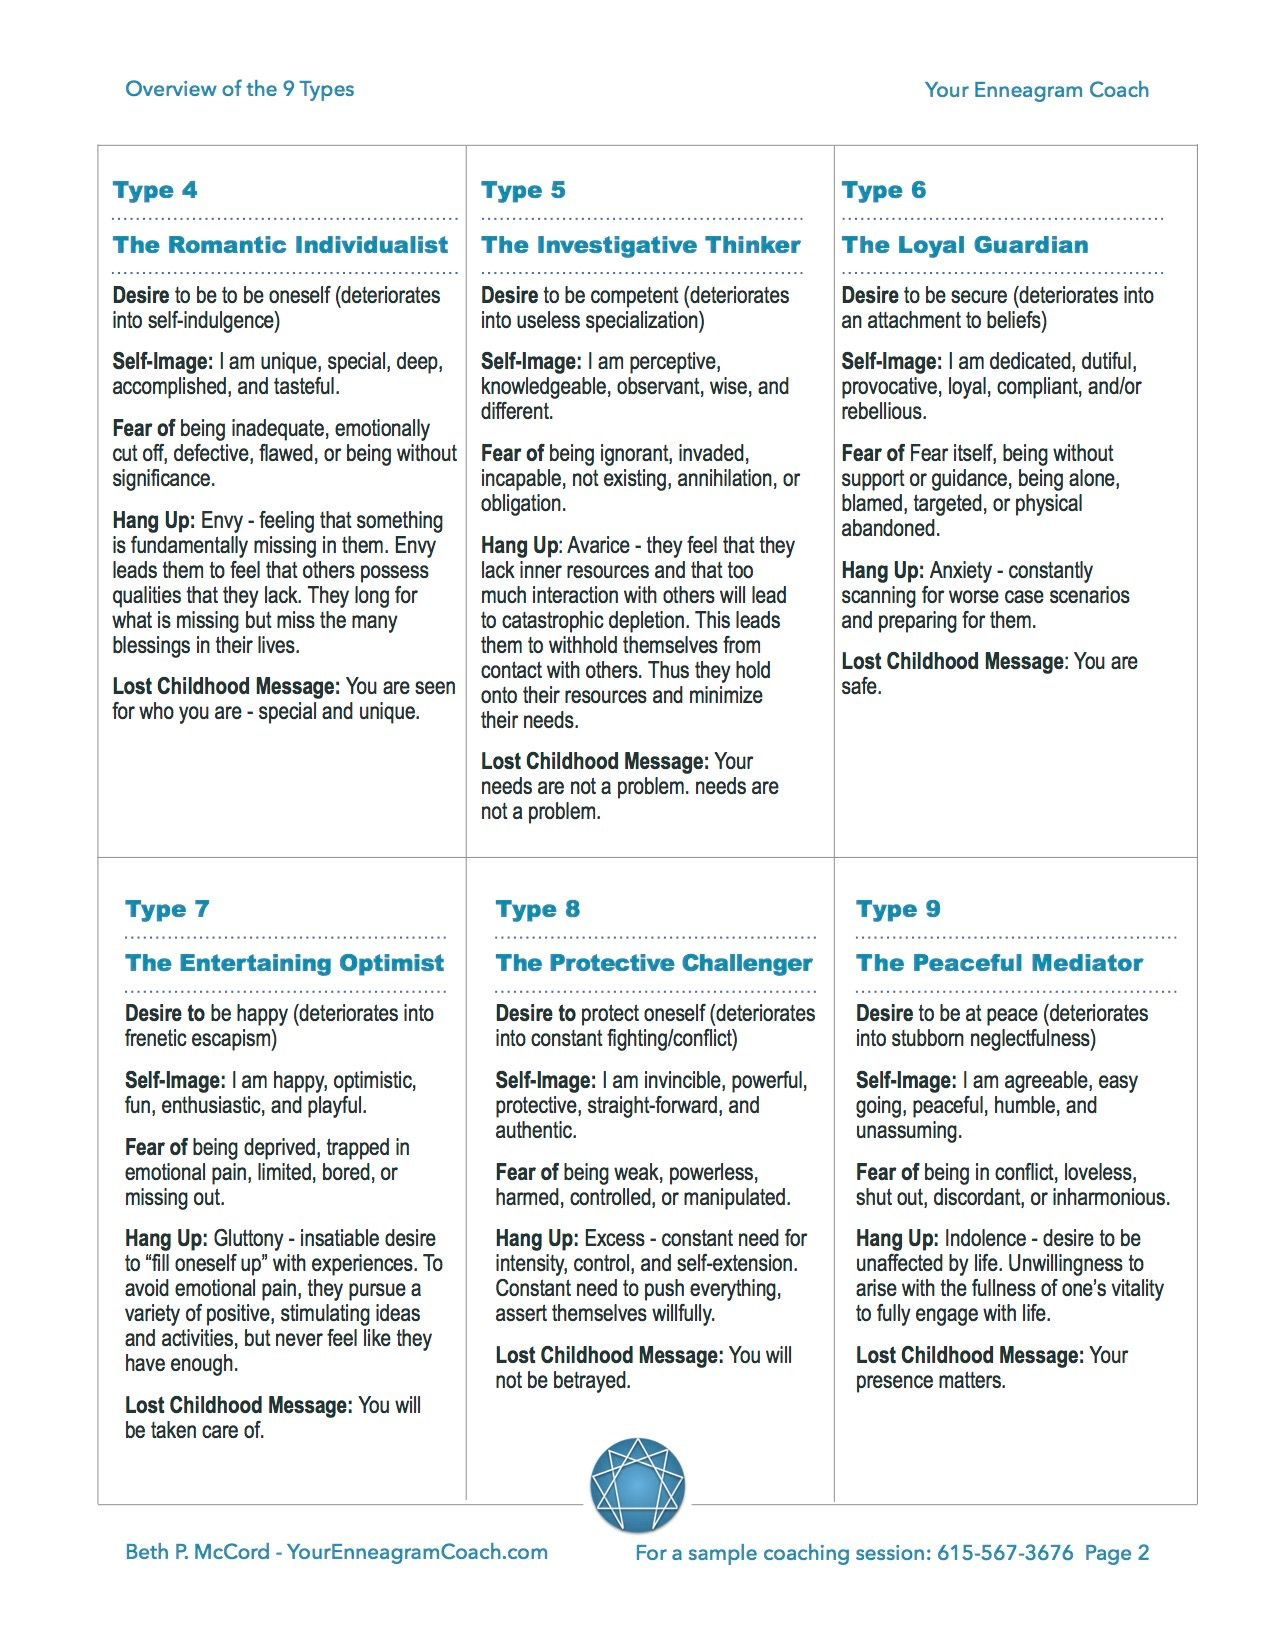 Overview Of The Nine Types Of Enneagram